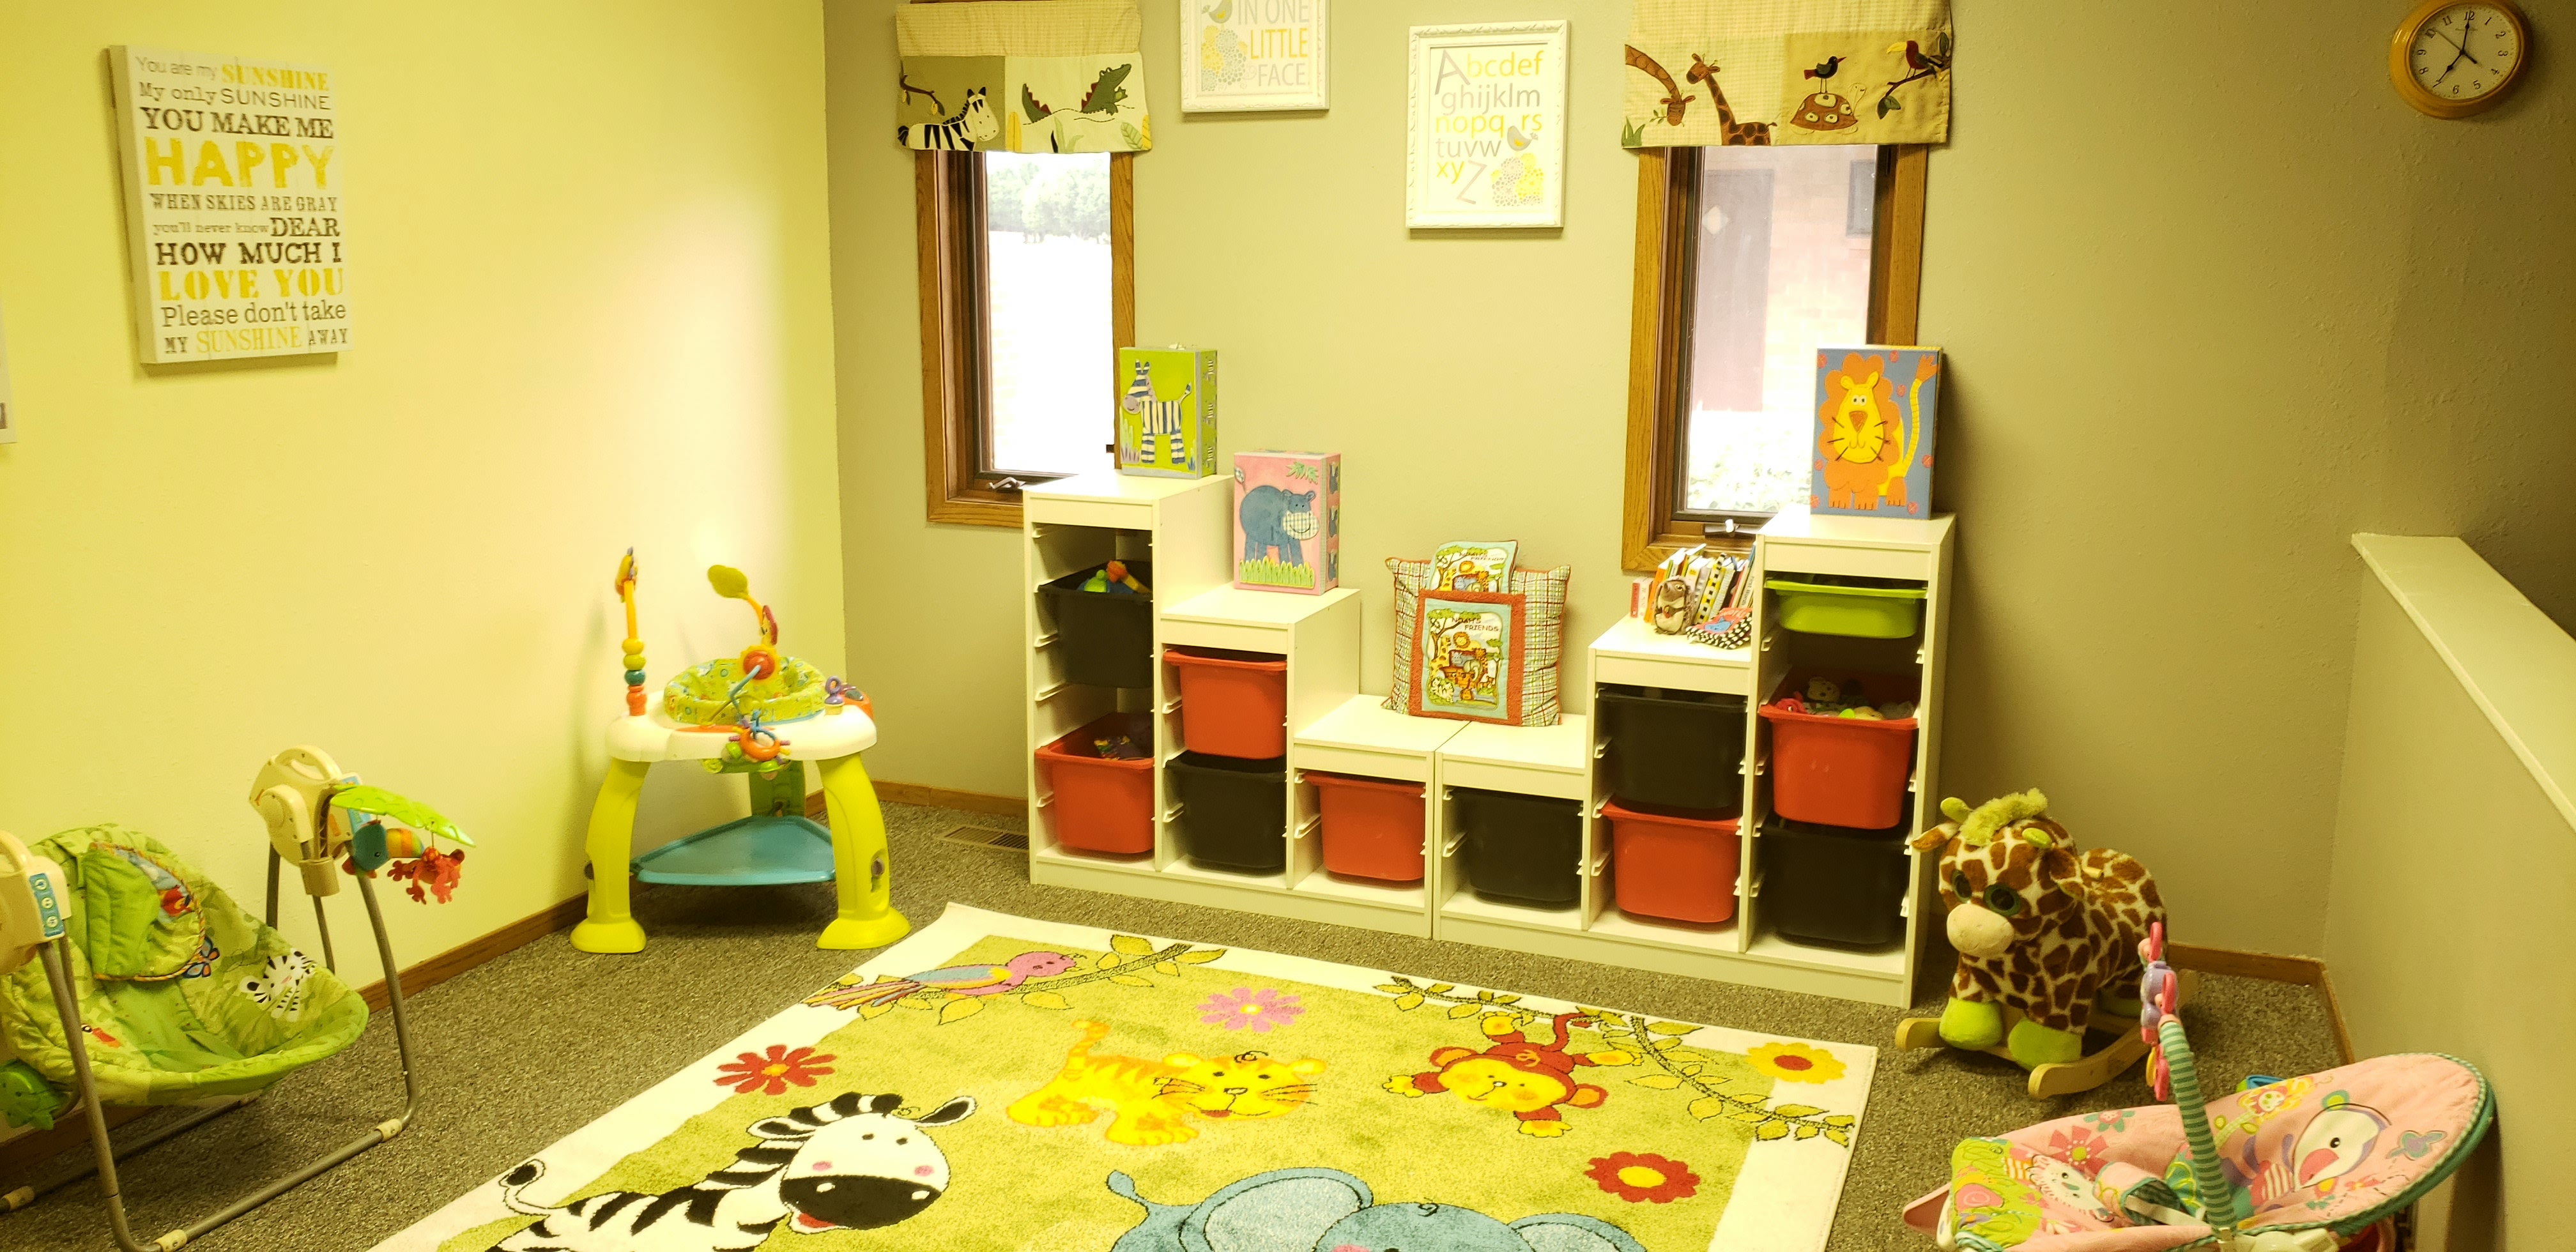 Infant room in the LLLCC Childcare Center in Eads Colorado